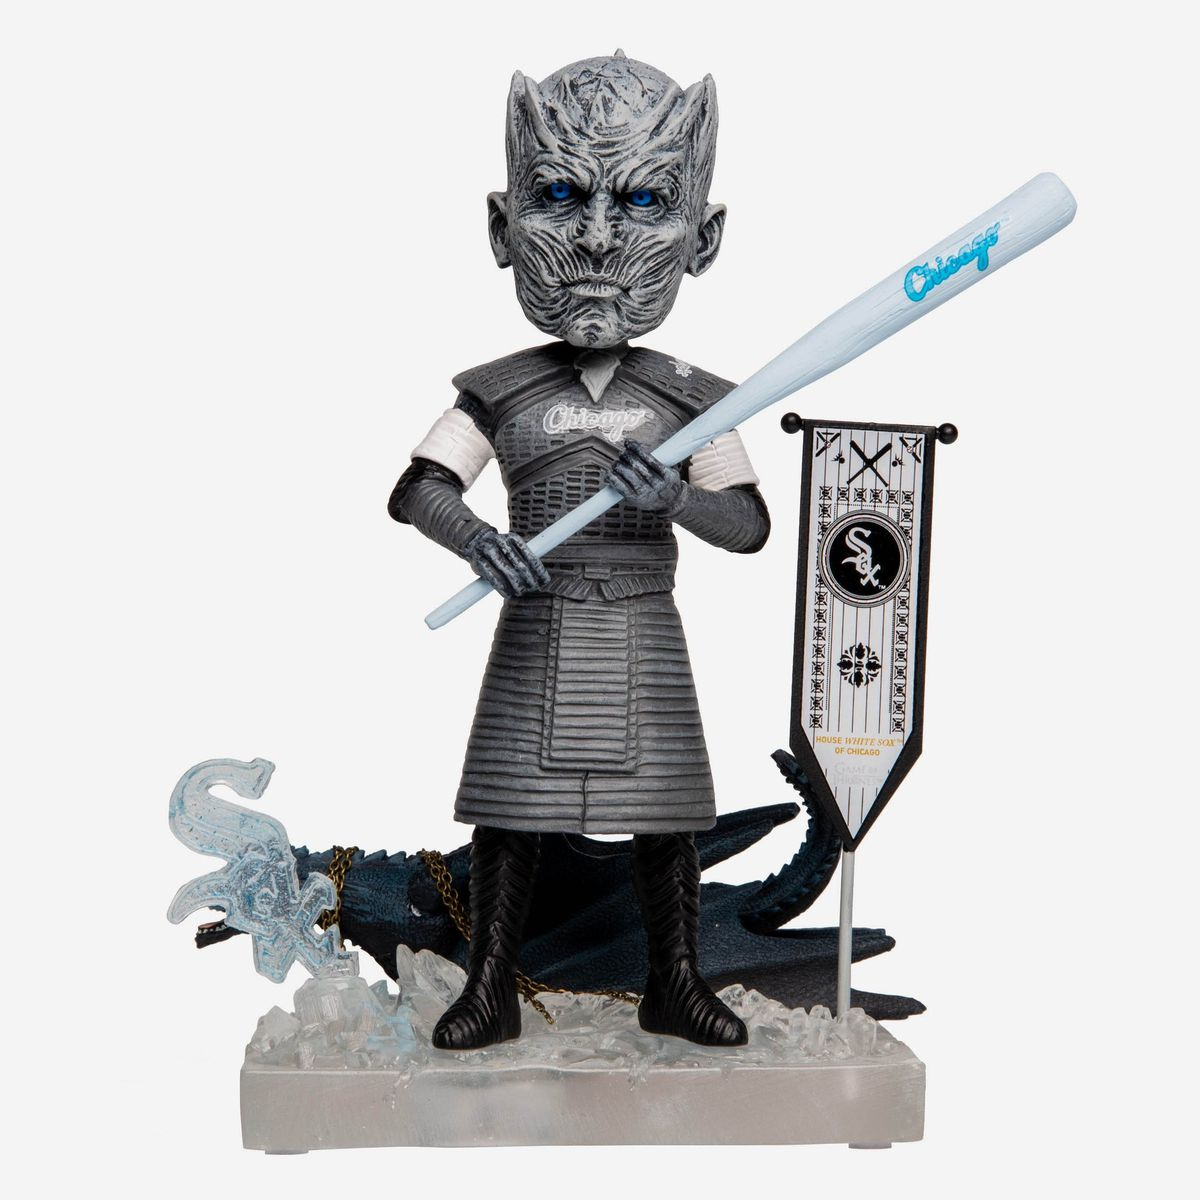 The White Sox/Night King bobblehead doll featured in a new series of bobbleheads available now for pre-order from FOCO.   Copyright HBO